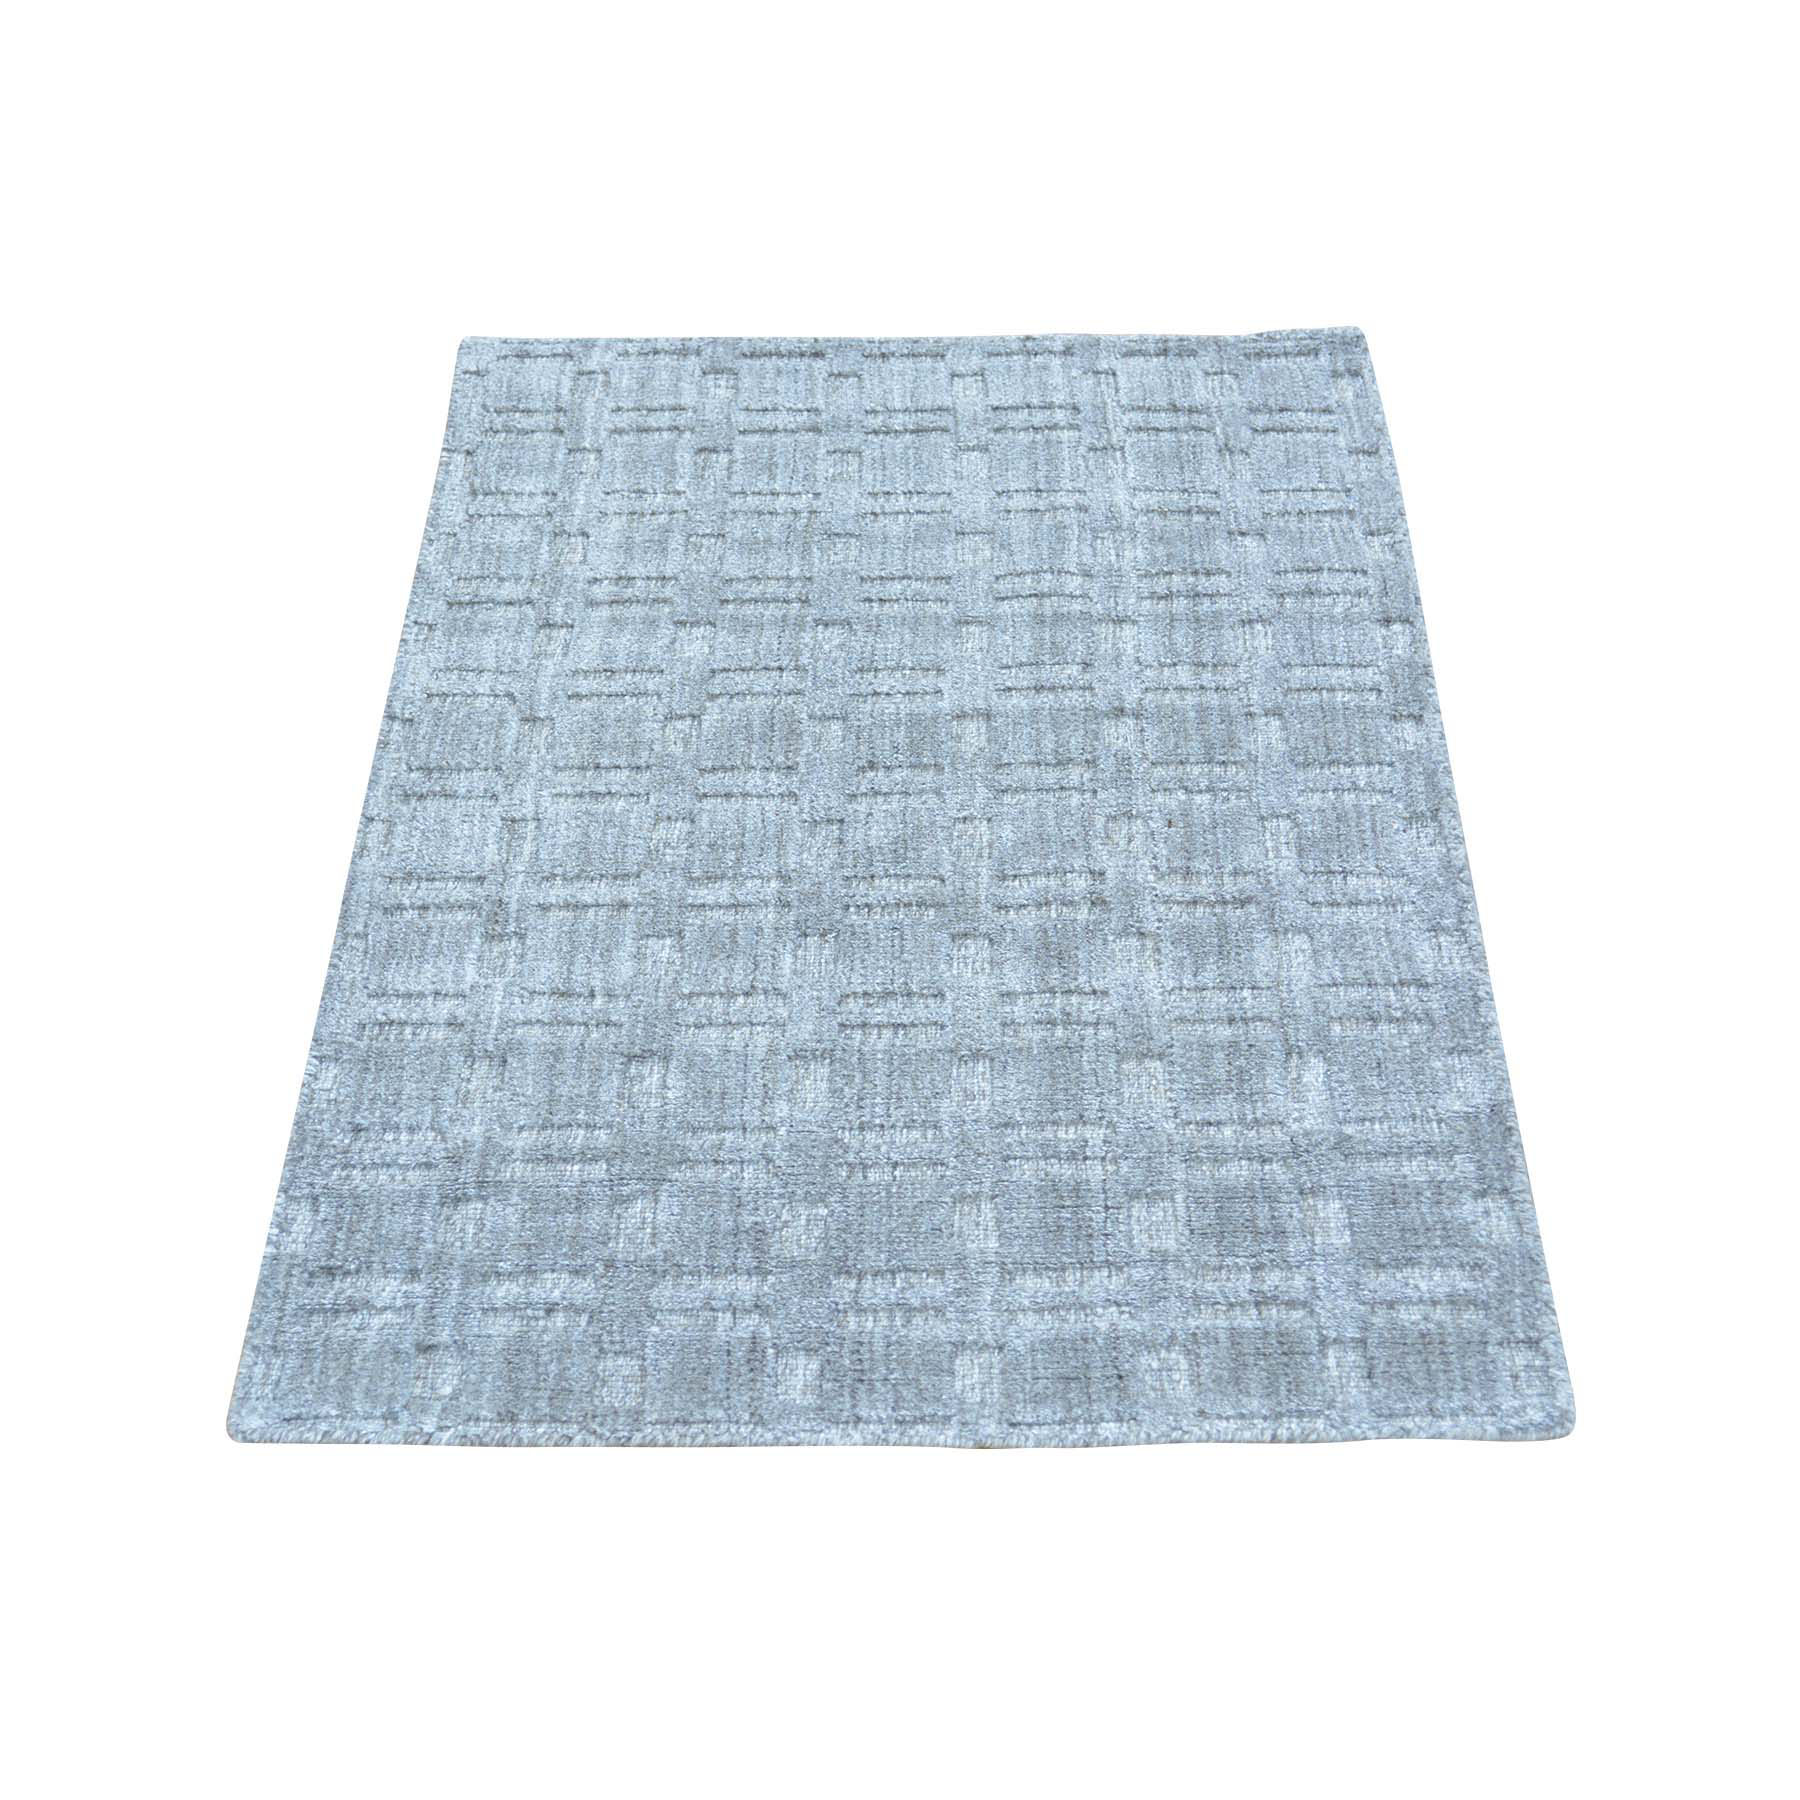 2'X3' Grey Tone On Tone Hand Loomed Wool And Silk Rug moab99dc